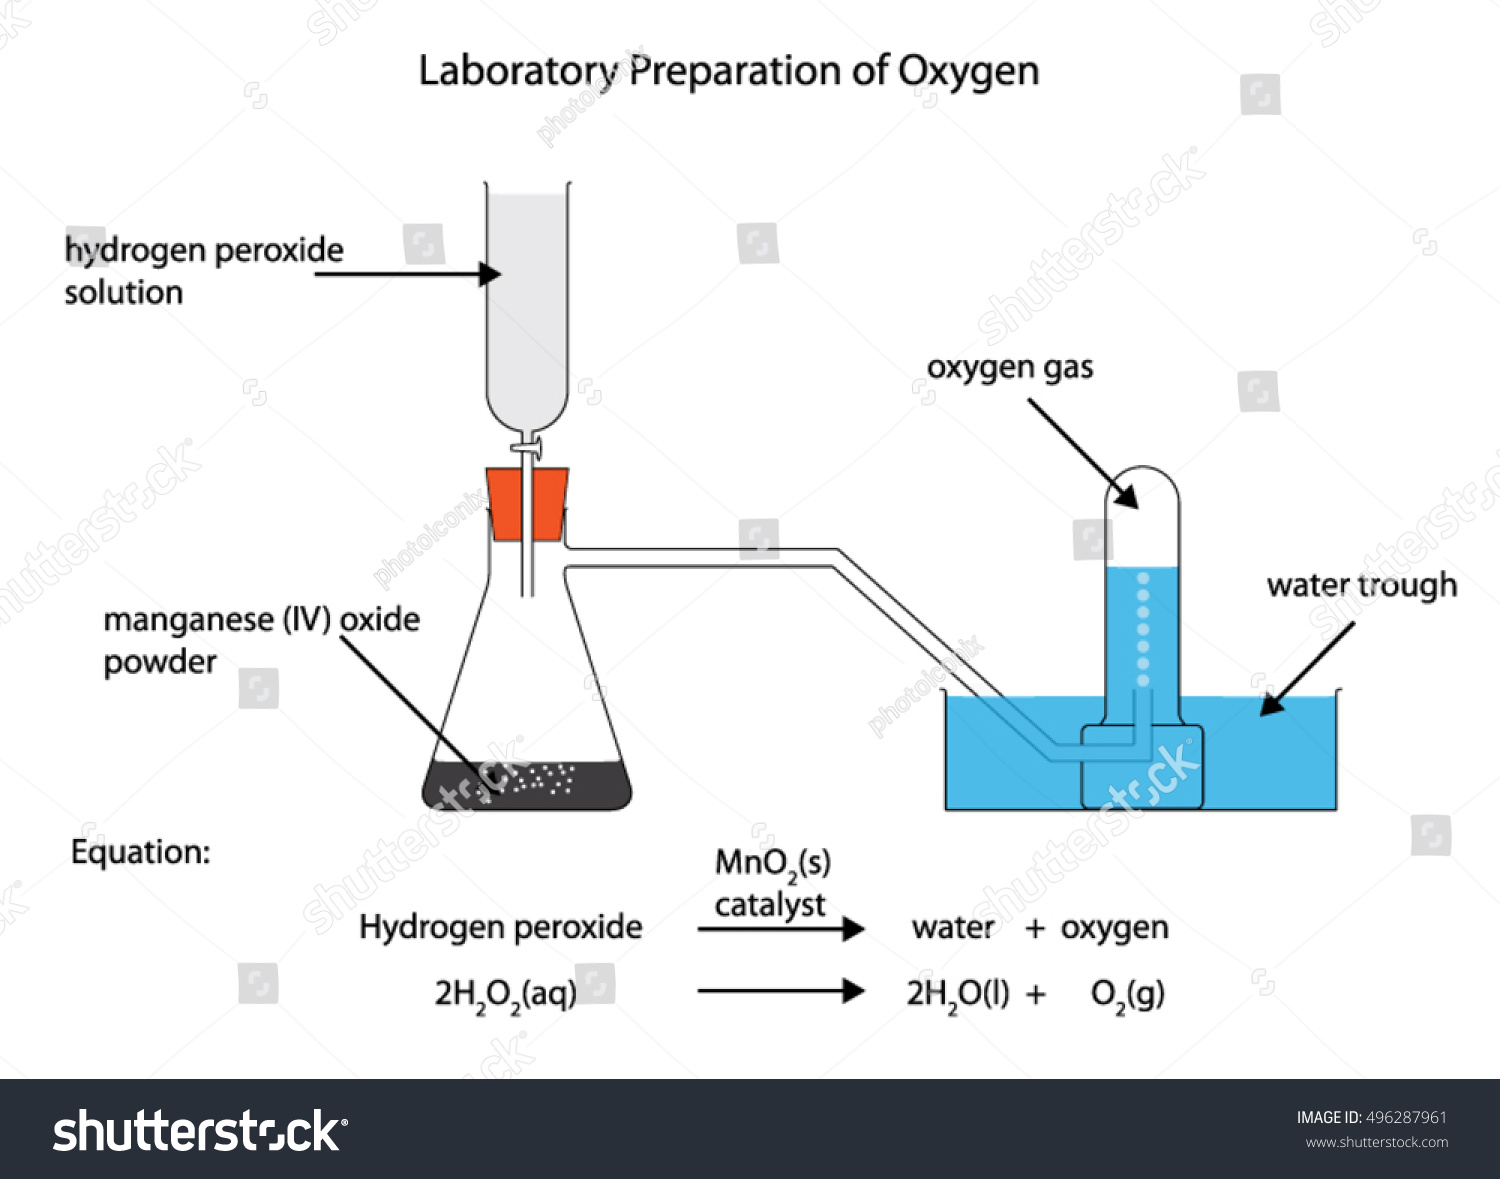 diagram of manganese house fuse box wiring fully labelled laboratory preparation oxygen stock